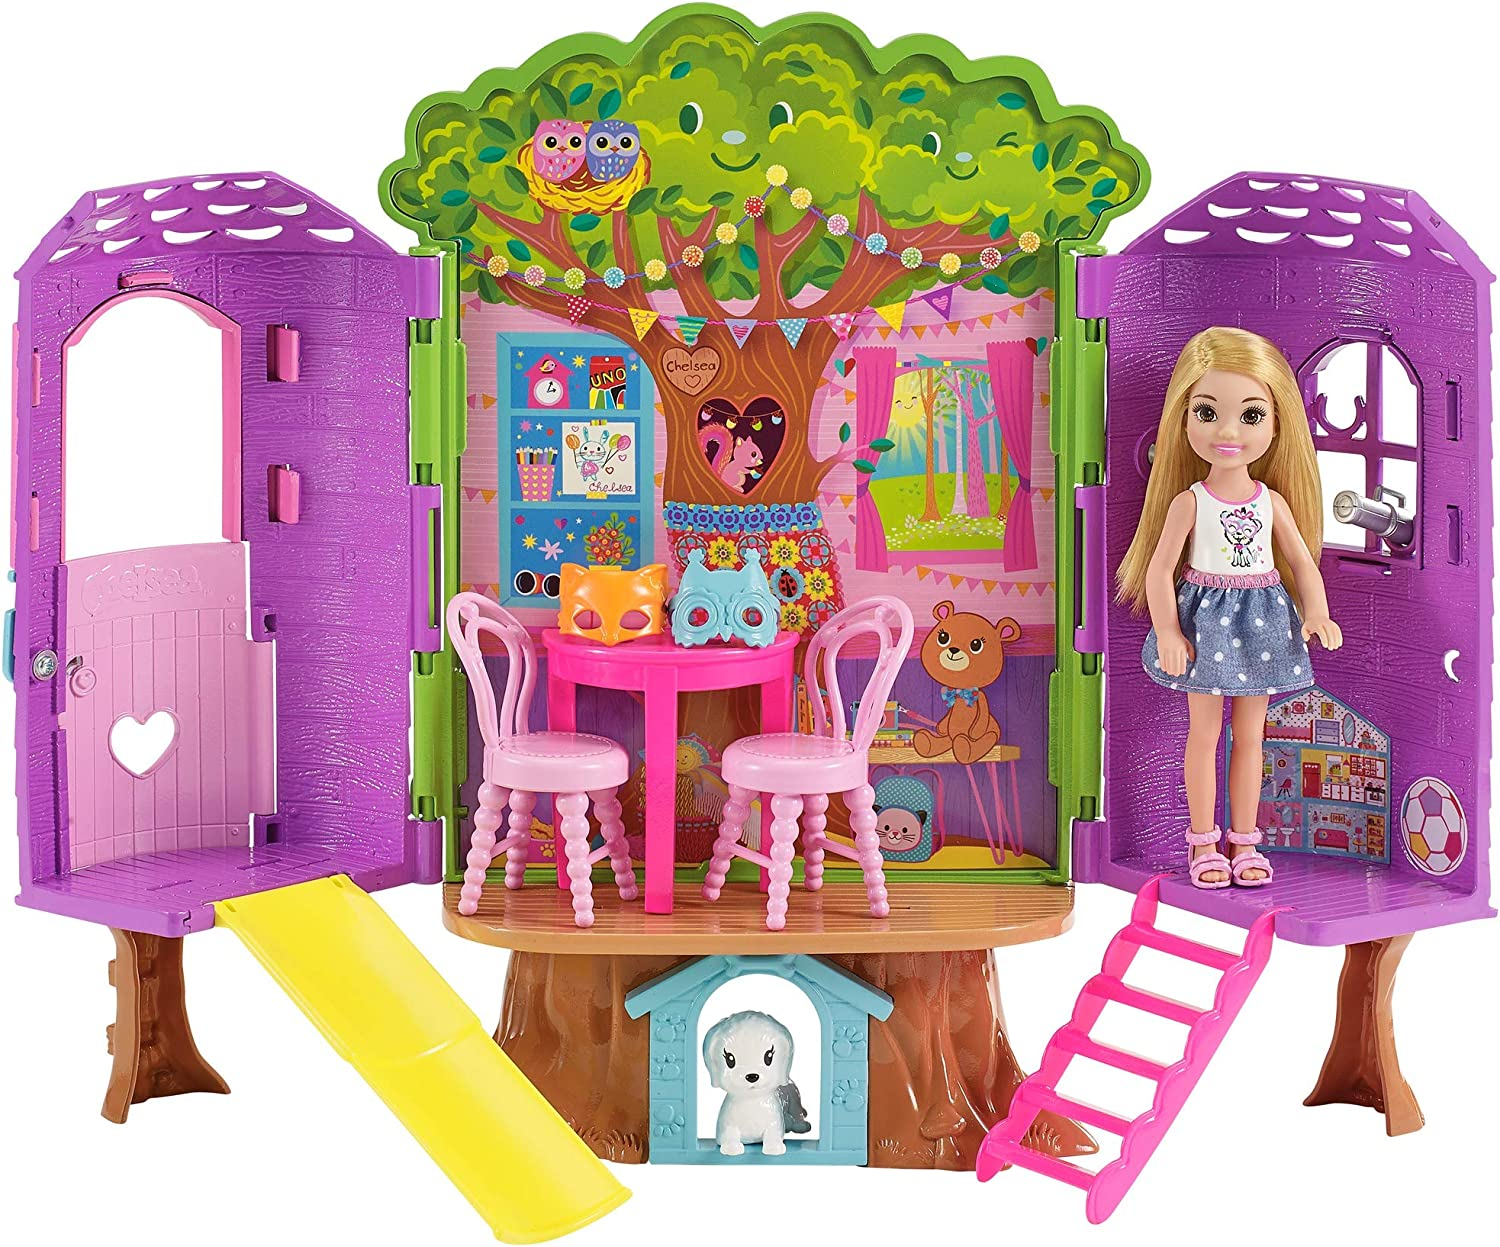 Barbie Chelsea Doll and Accessory: Toys & Games